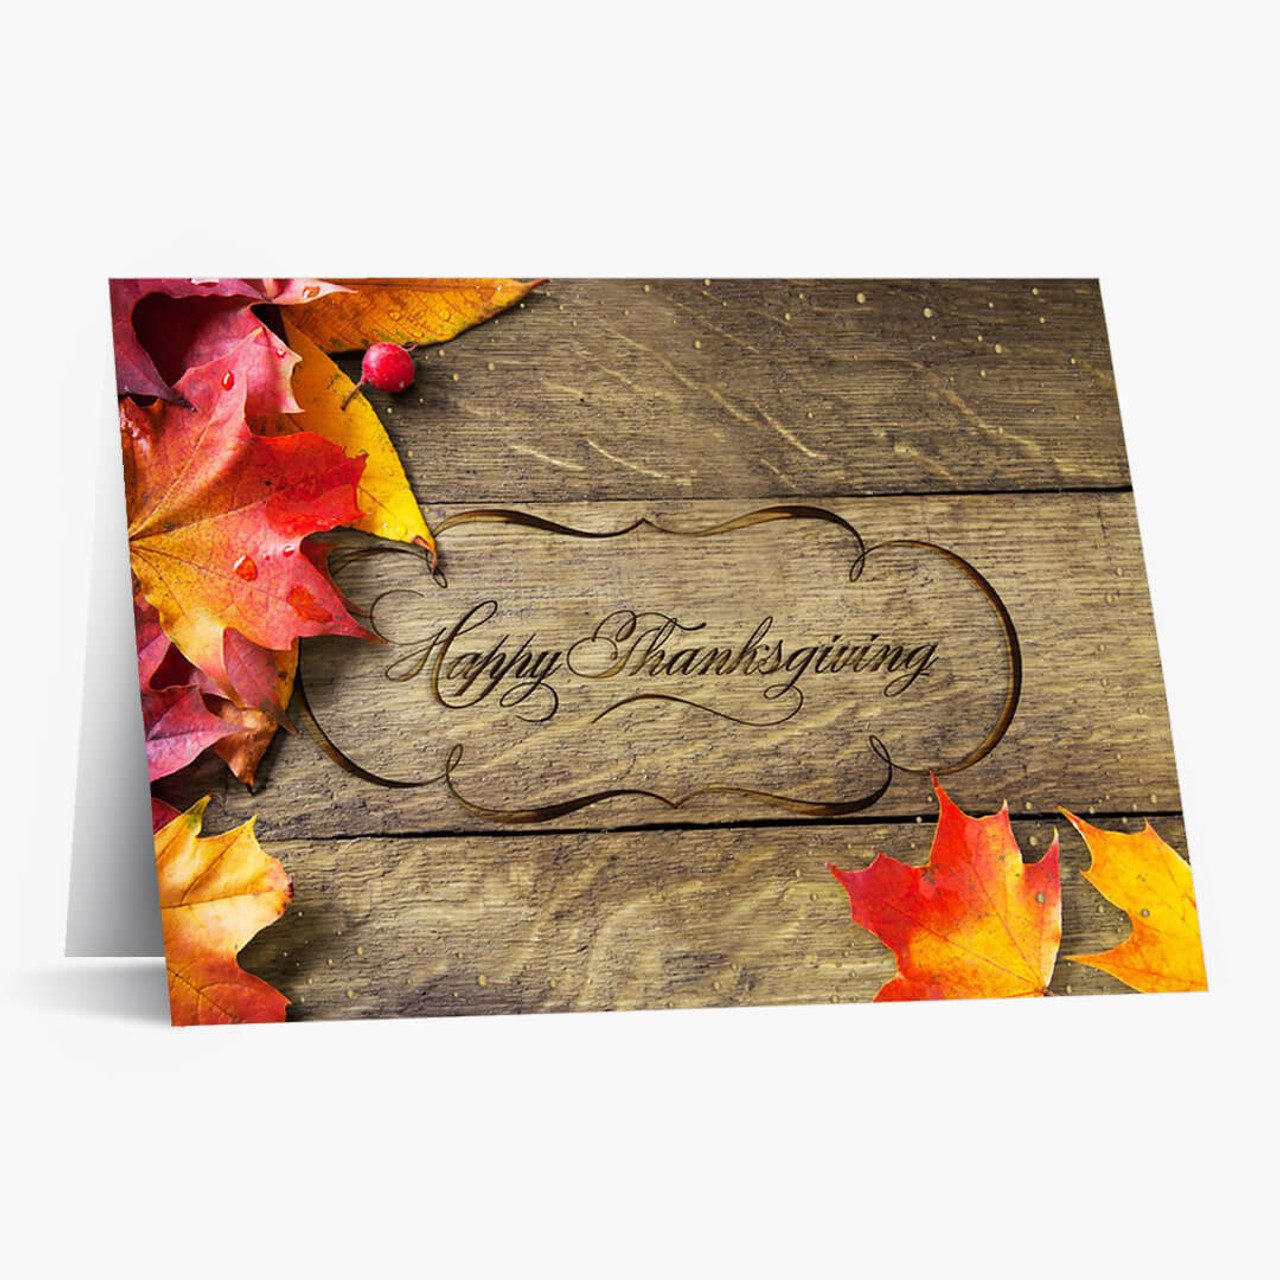 Enduring Holiday Thanksgiving Card